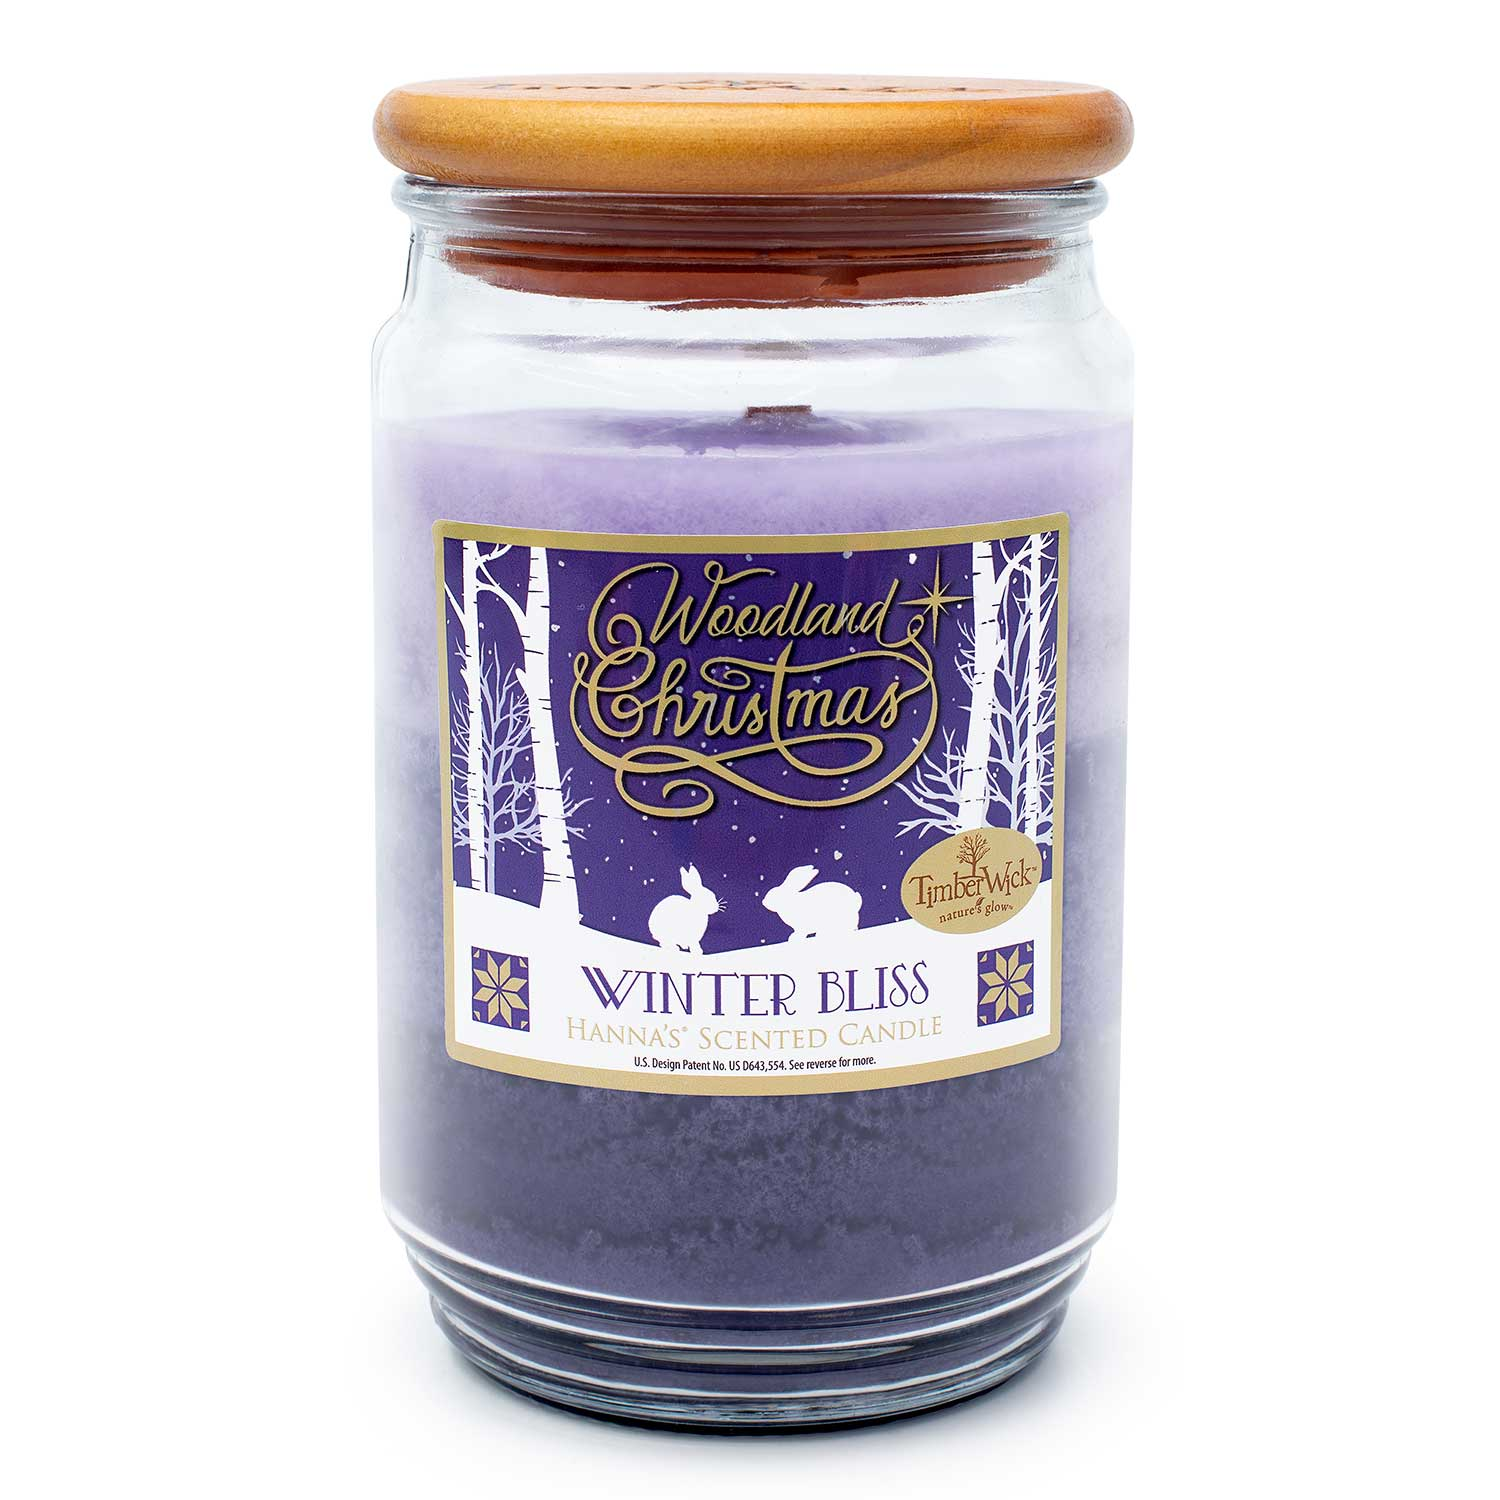 TimberWick Winter Bliss Scented Mottled Candle